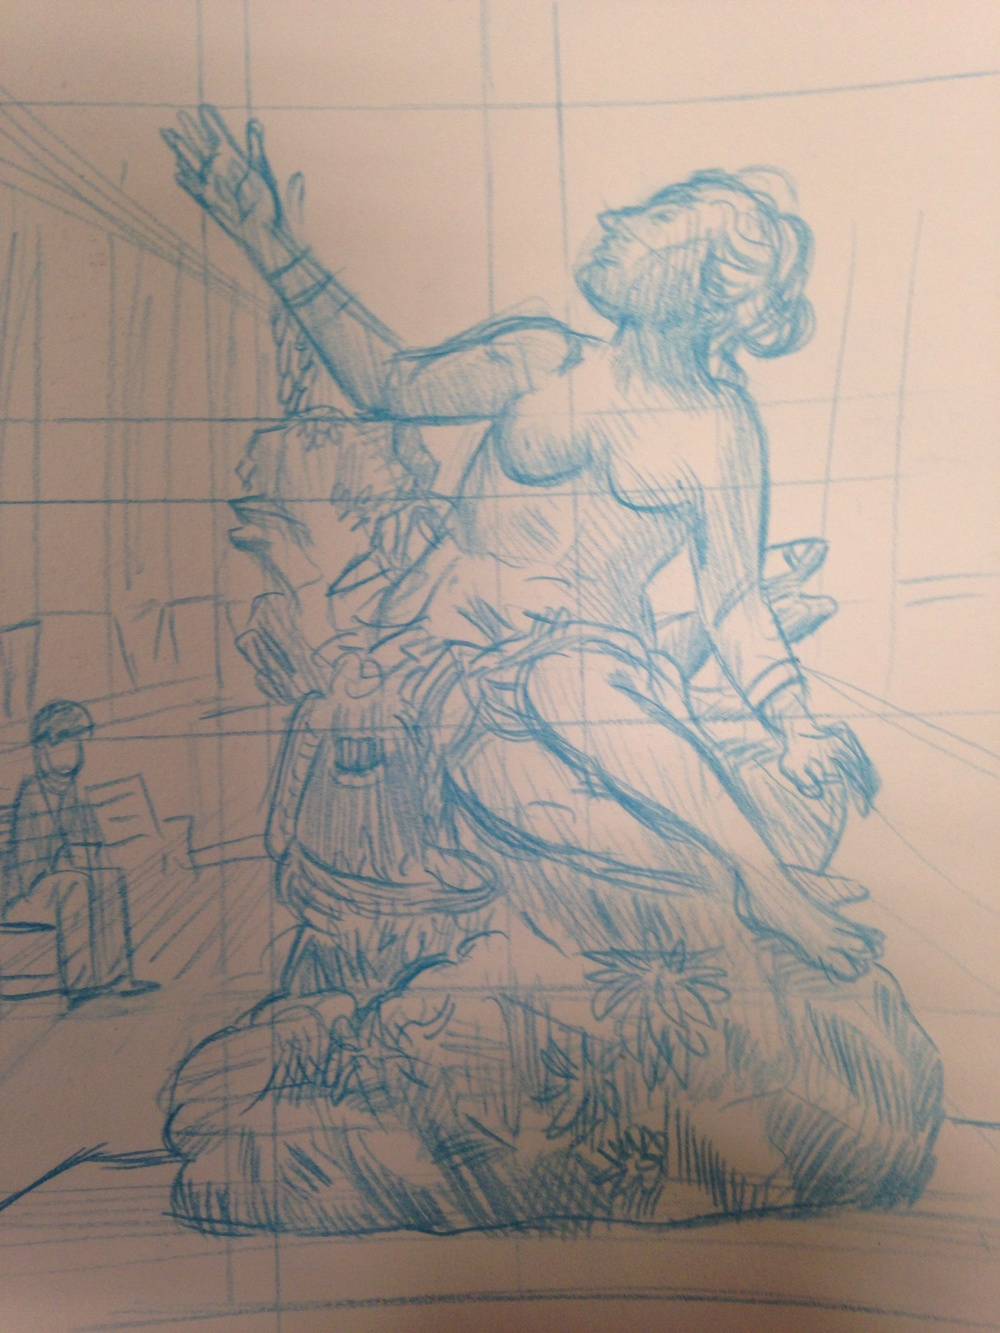 Close up of a pretty much finished sketch of the statue